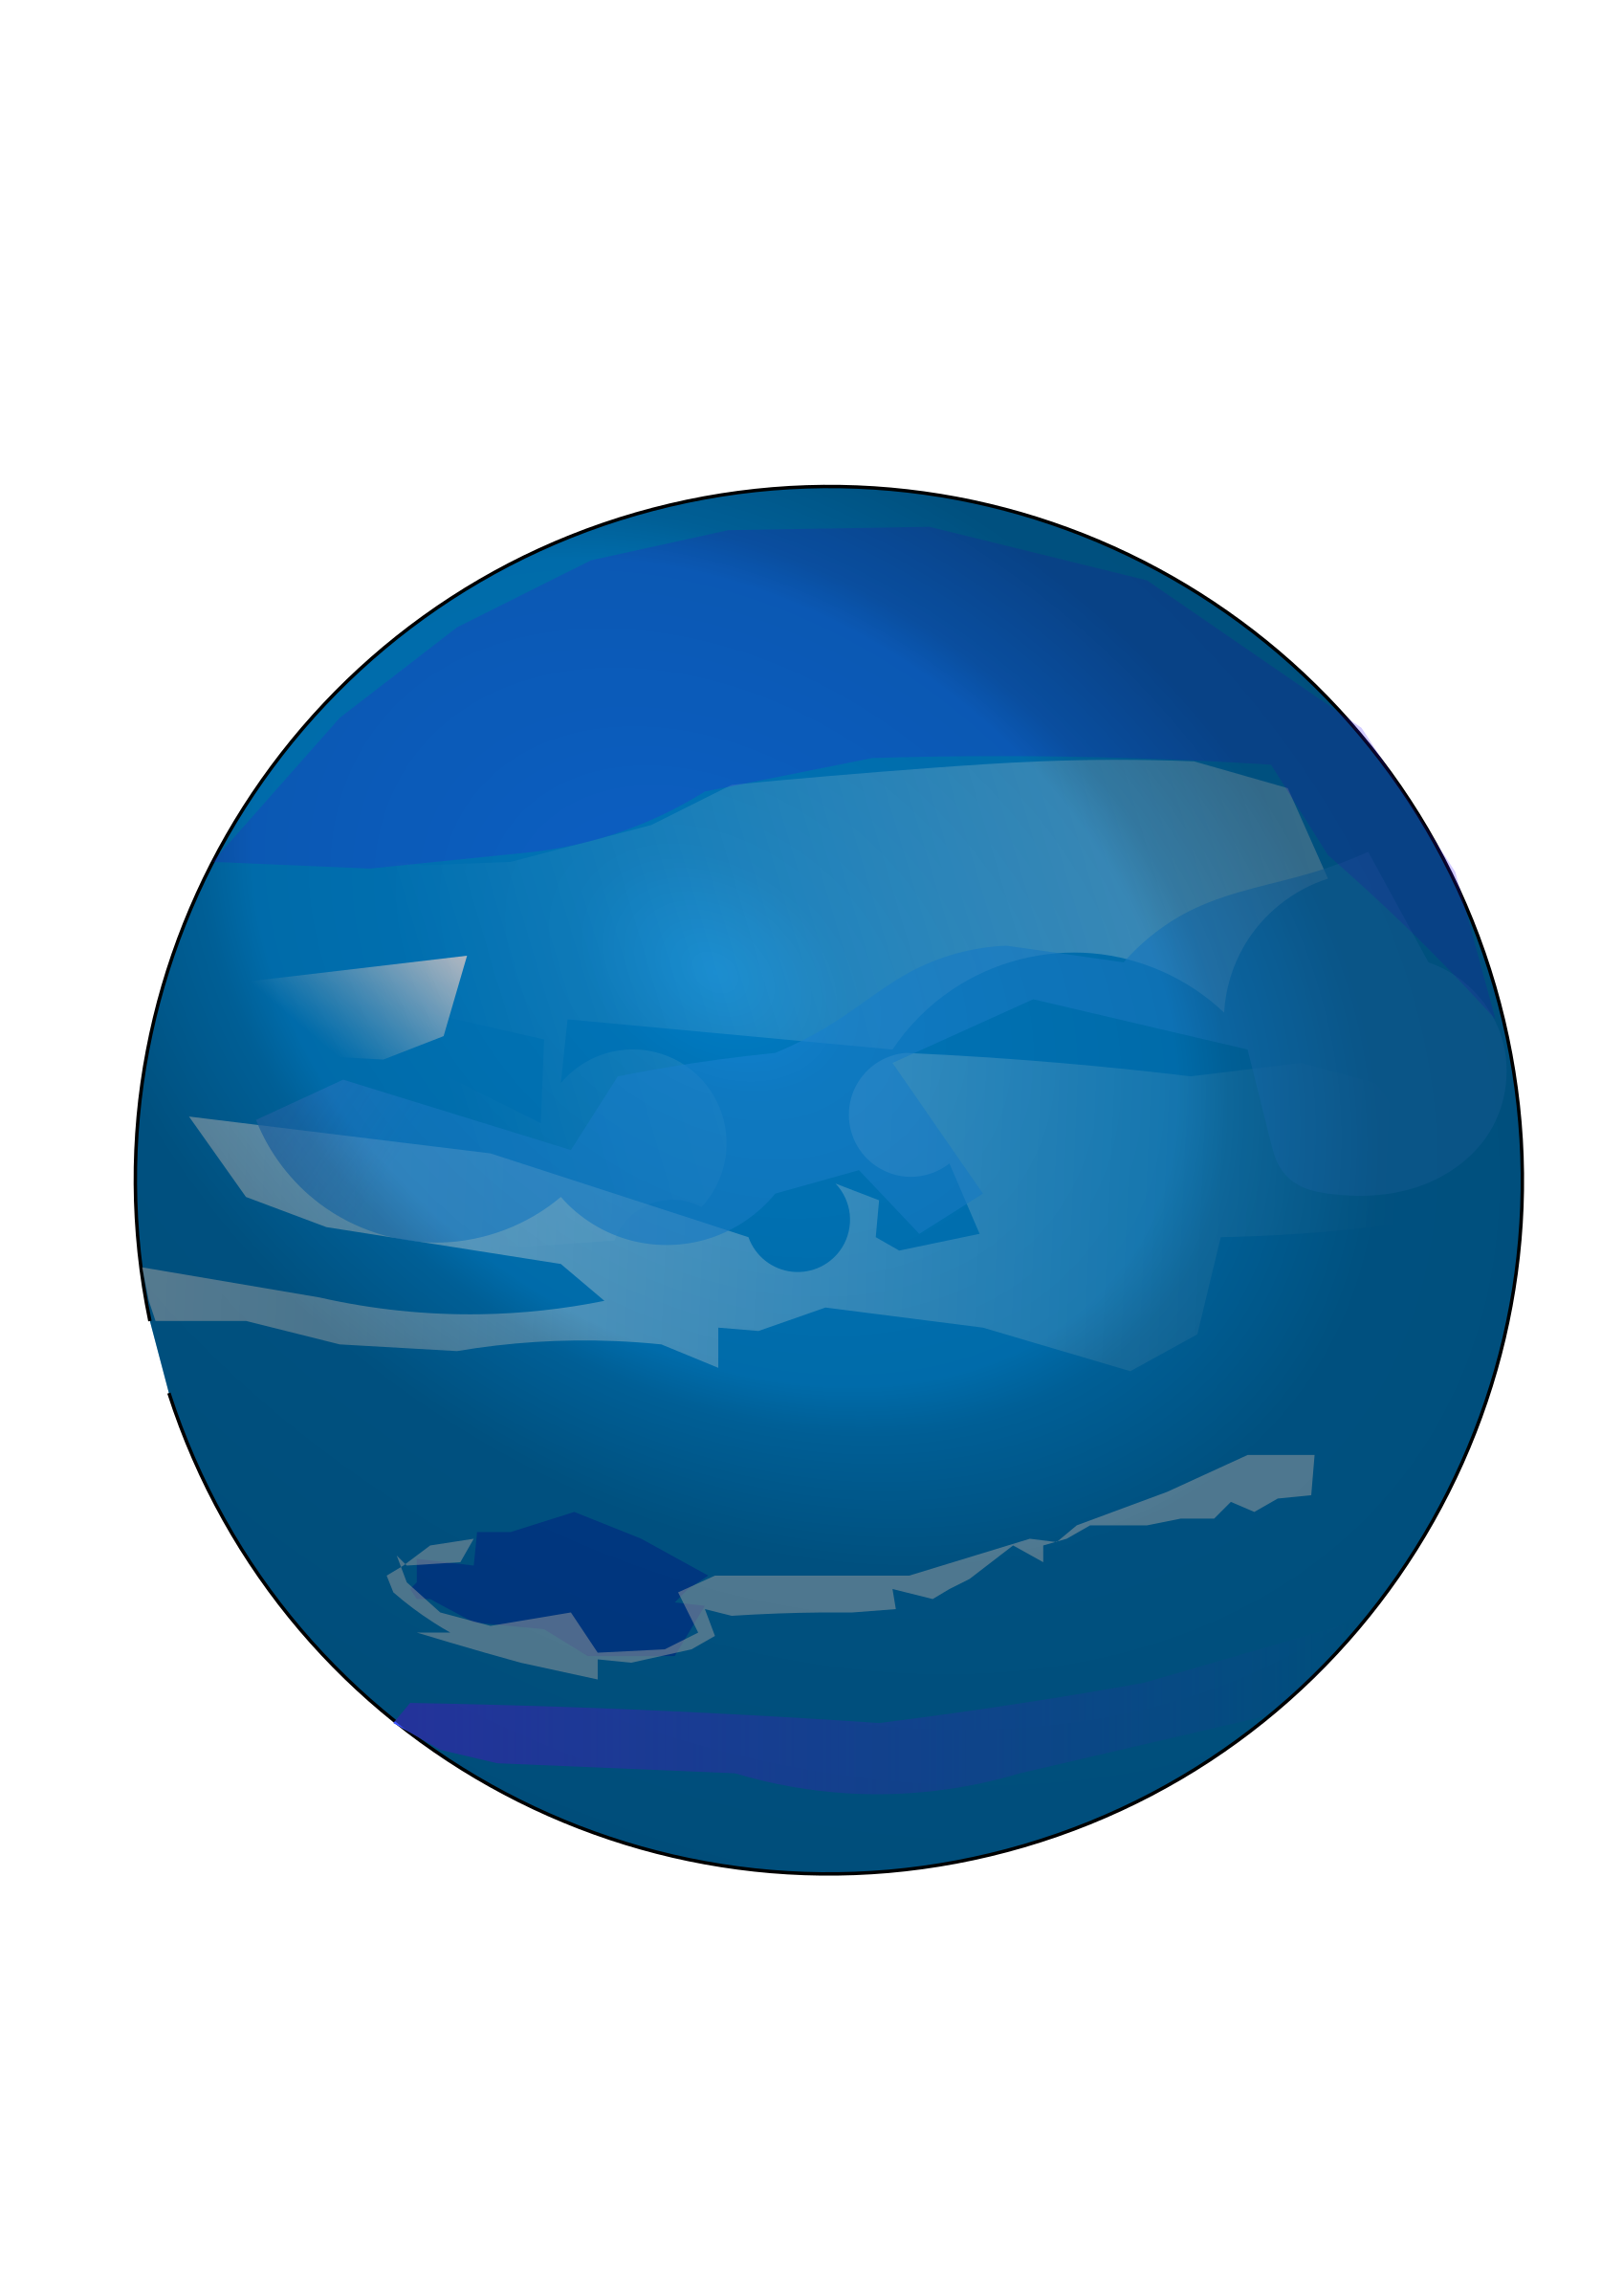 Big image png. Planets clipart neptune planet